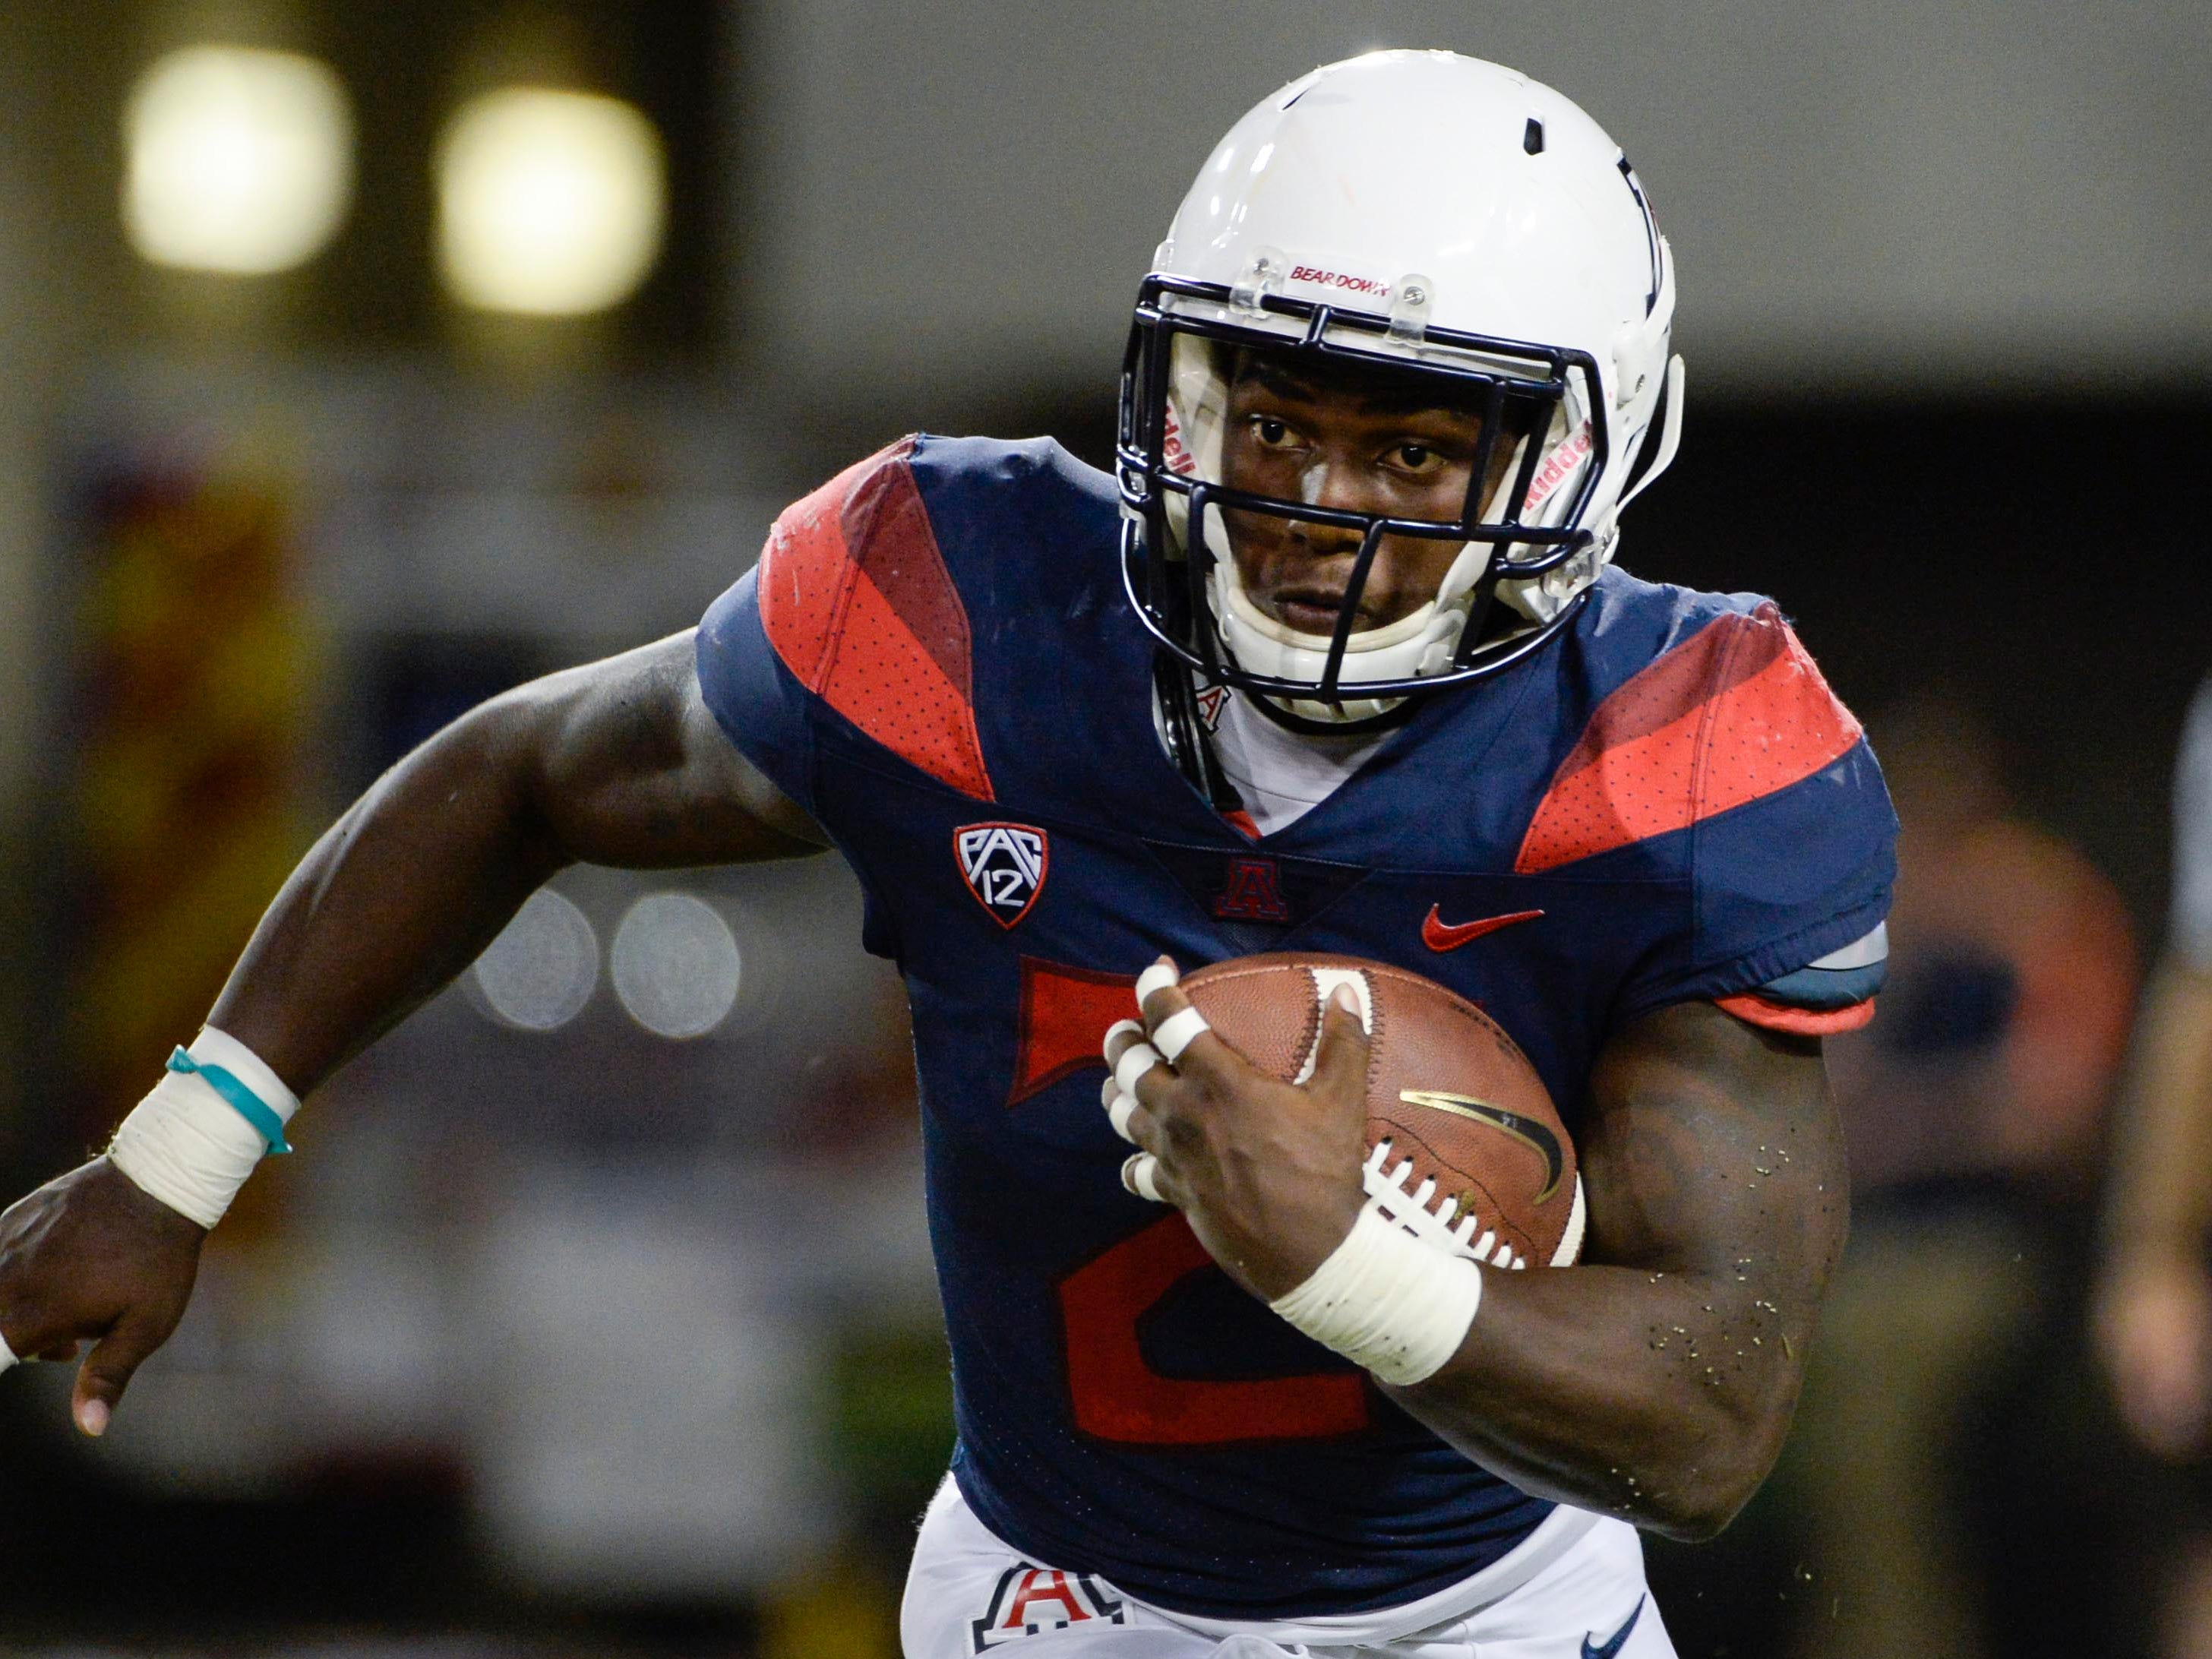 Sep 29, 2018; Tucson, AZ, USA; Arizona Wildcats running back J.J. Taylor (21) runs the ball against the Southern California Trojans during the second half at Arizona Stadium. Mandatory Credit: Casey Sapio-USA TODAY Sports